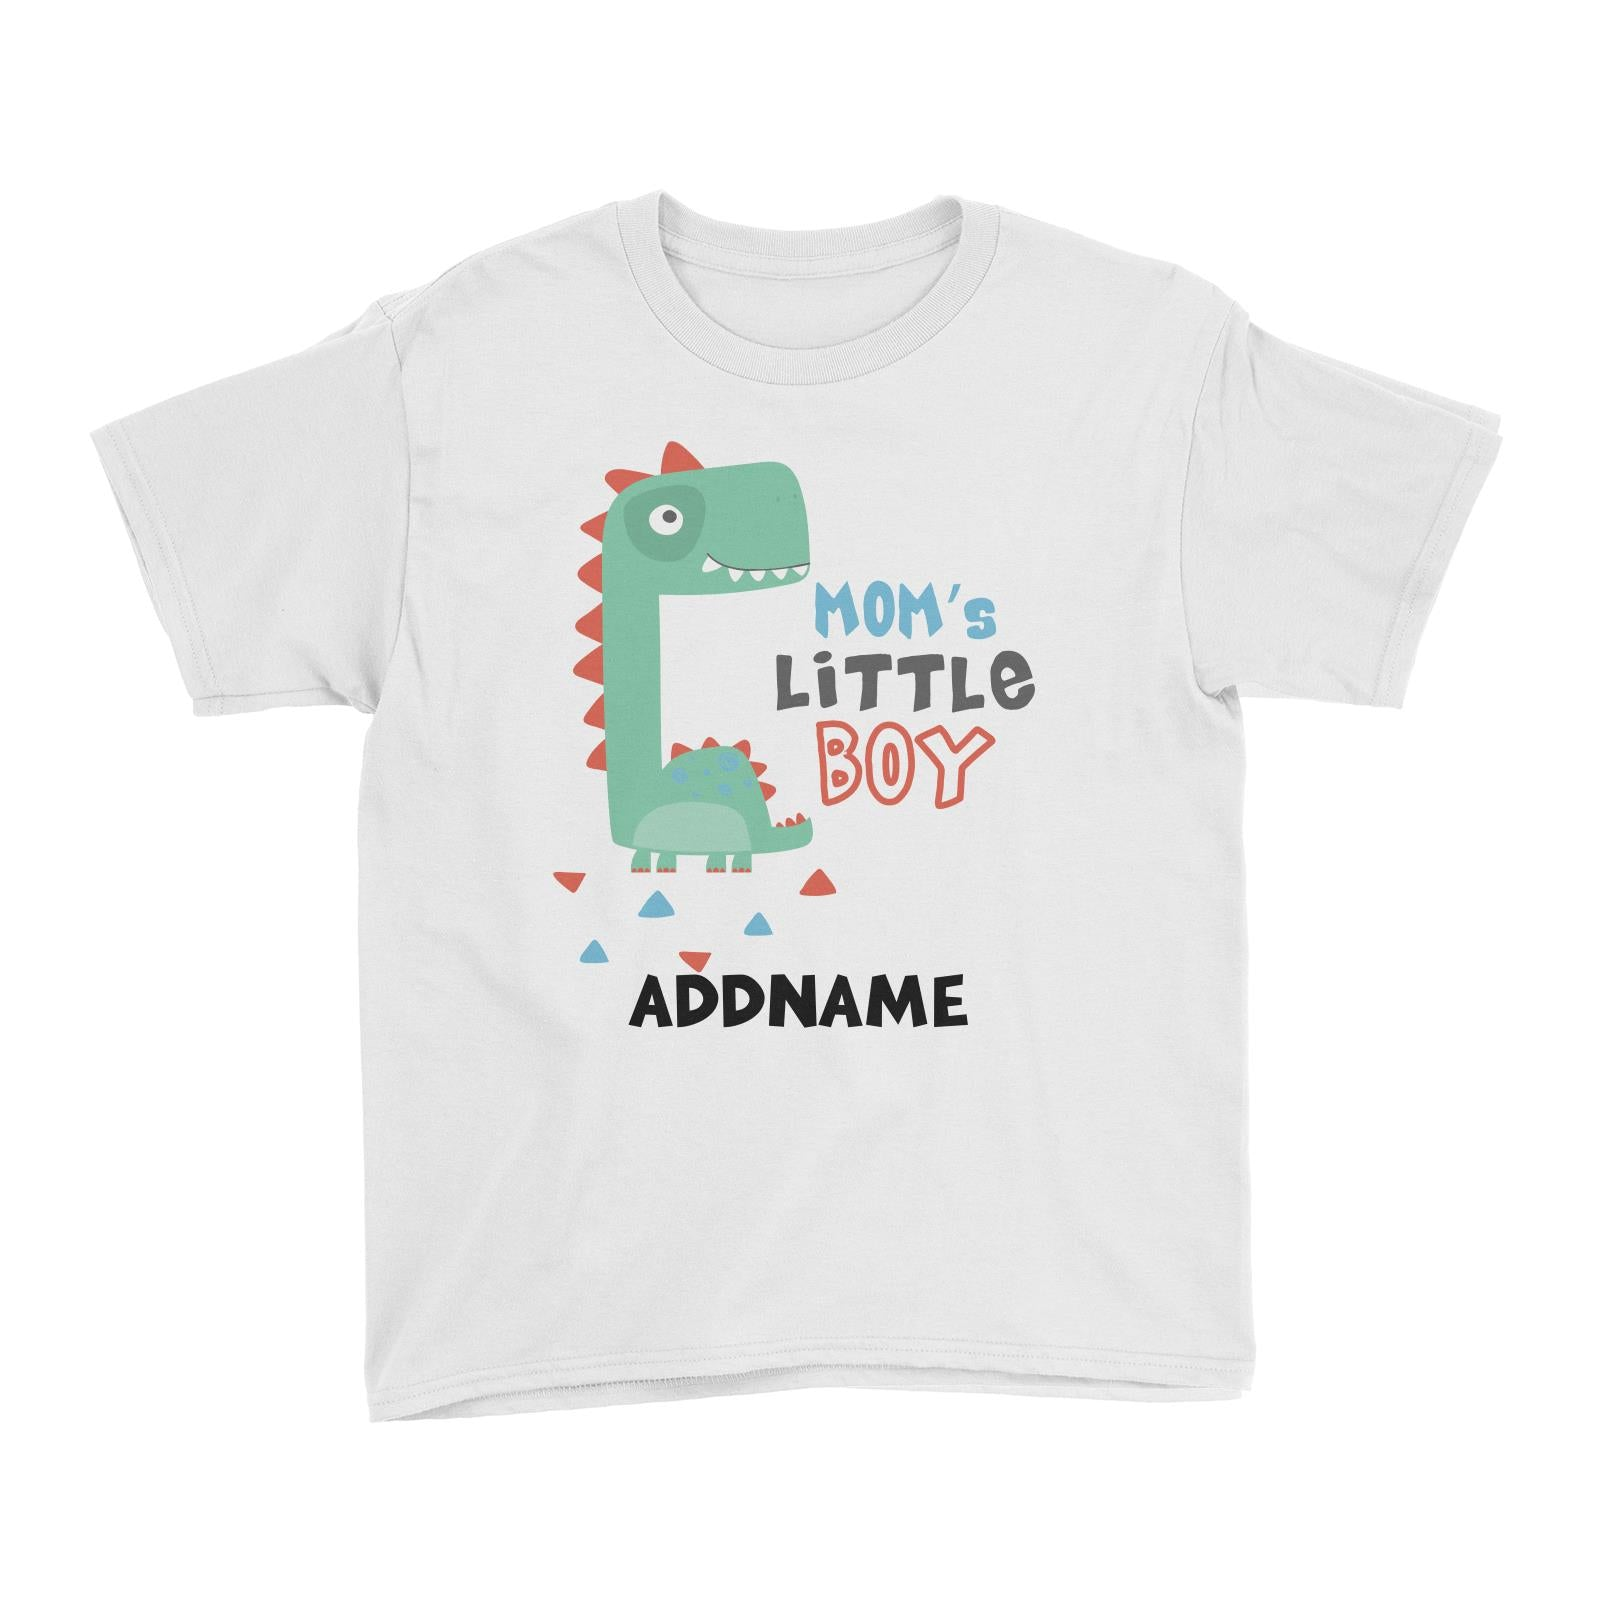 Mom's Little Boy Dinosaur Addname Kid's T-Shirt